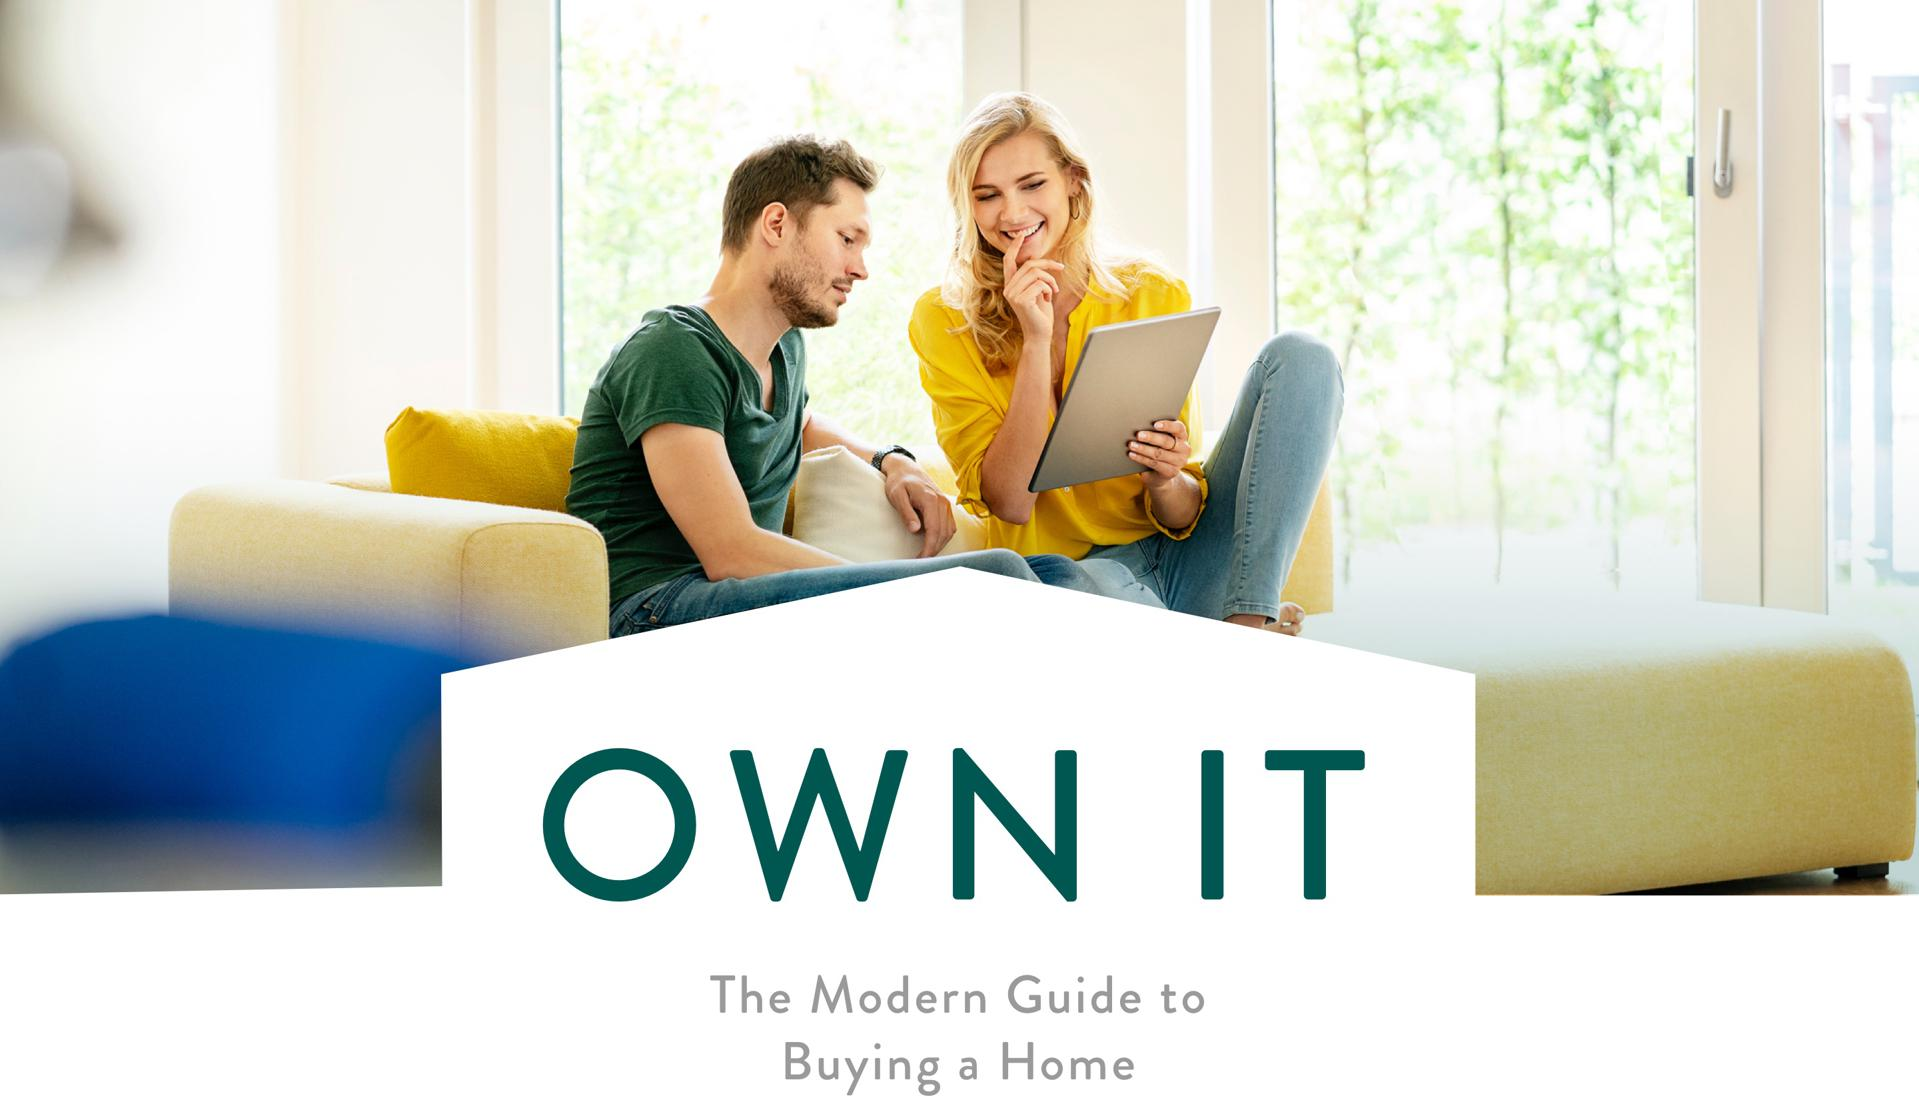 Own it: The Modern Guide to Buying a Home